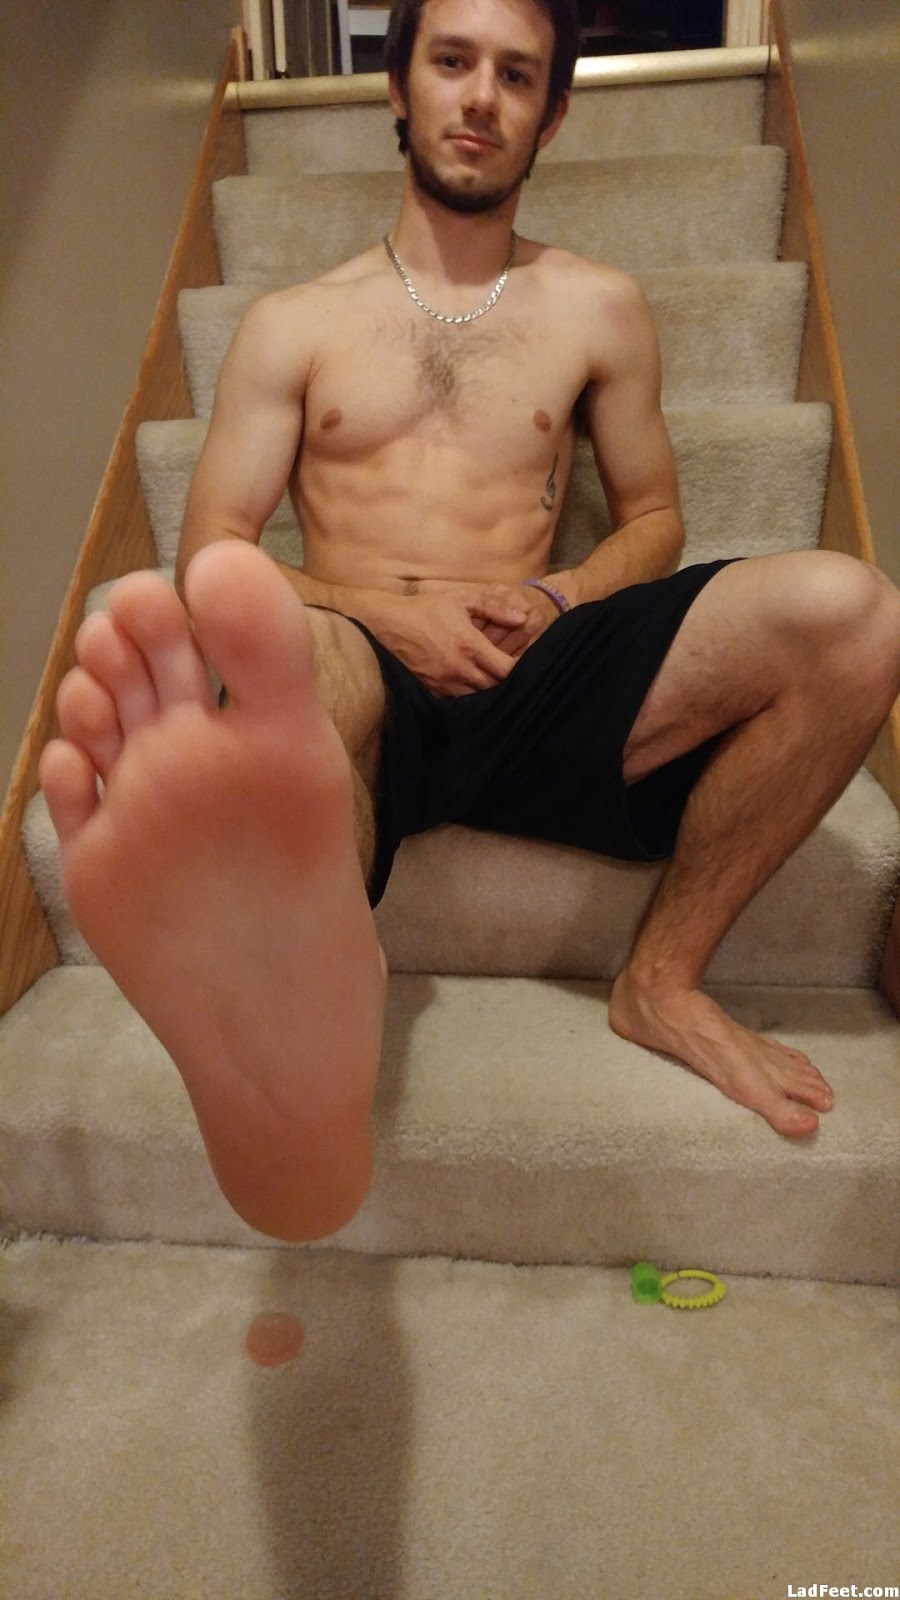 Feet Fetish Dating Site